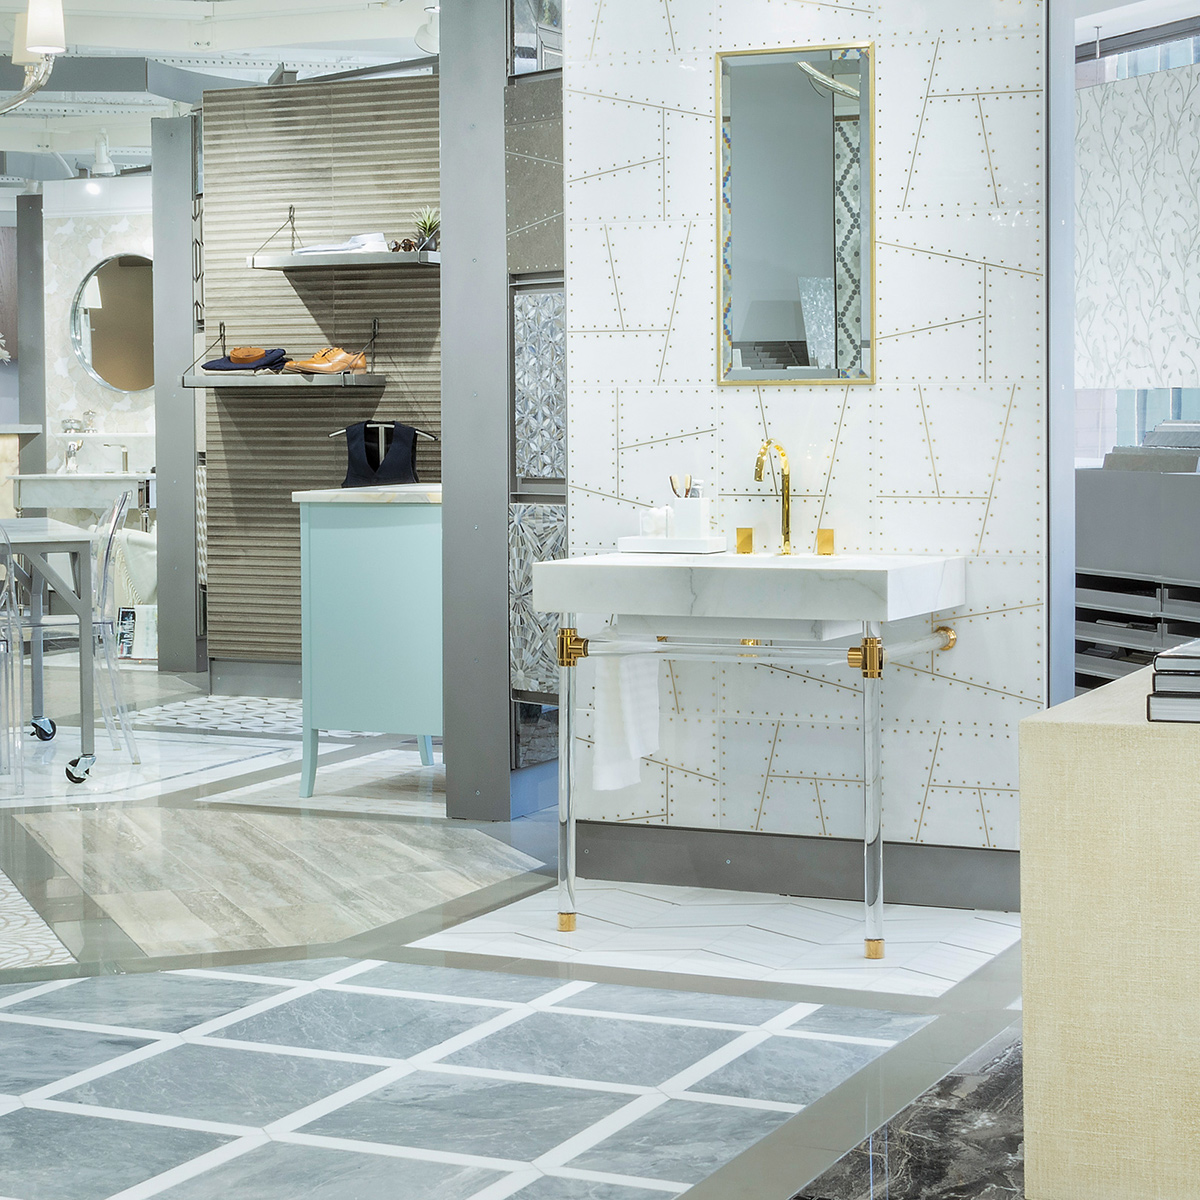 https sinklegs com custom gallery the artistic tile showroom in the ad building in nyc featuring a studio style washstand with clear acrylic legs and horizontals